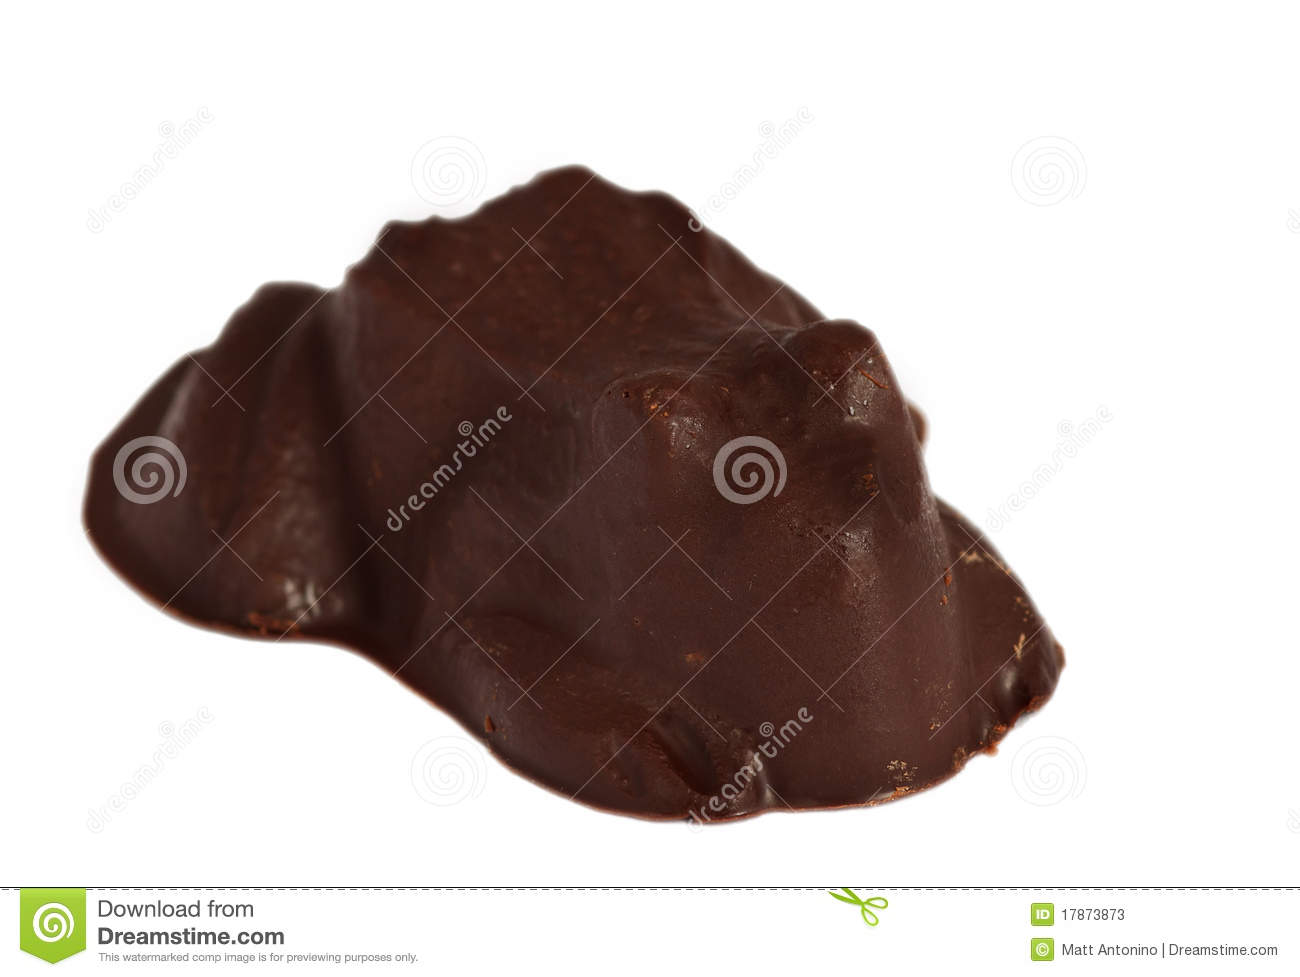 One chocolate frog